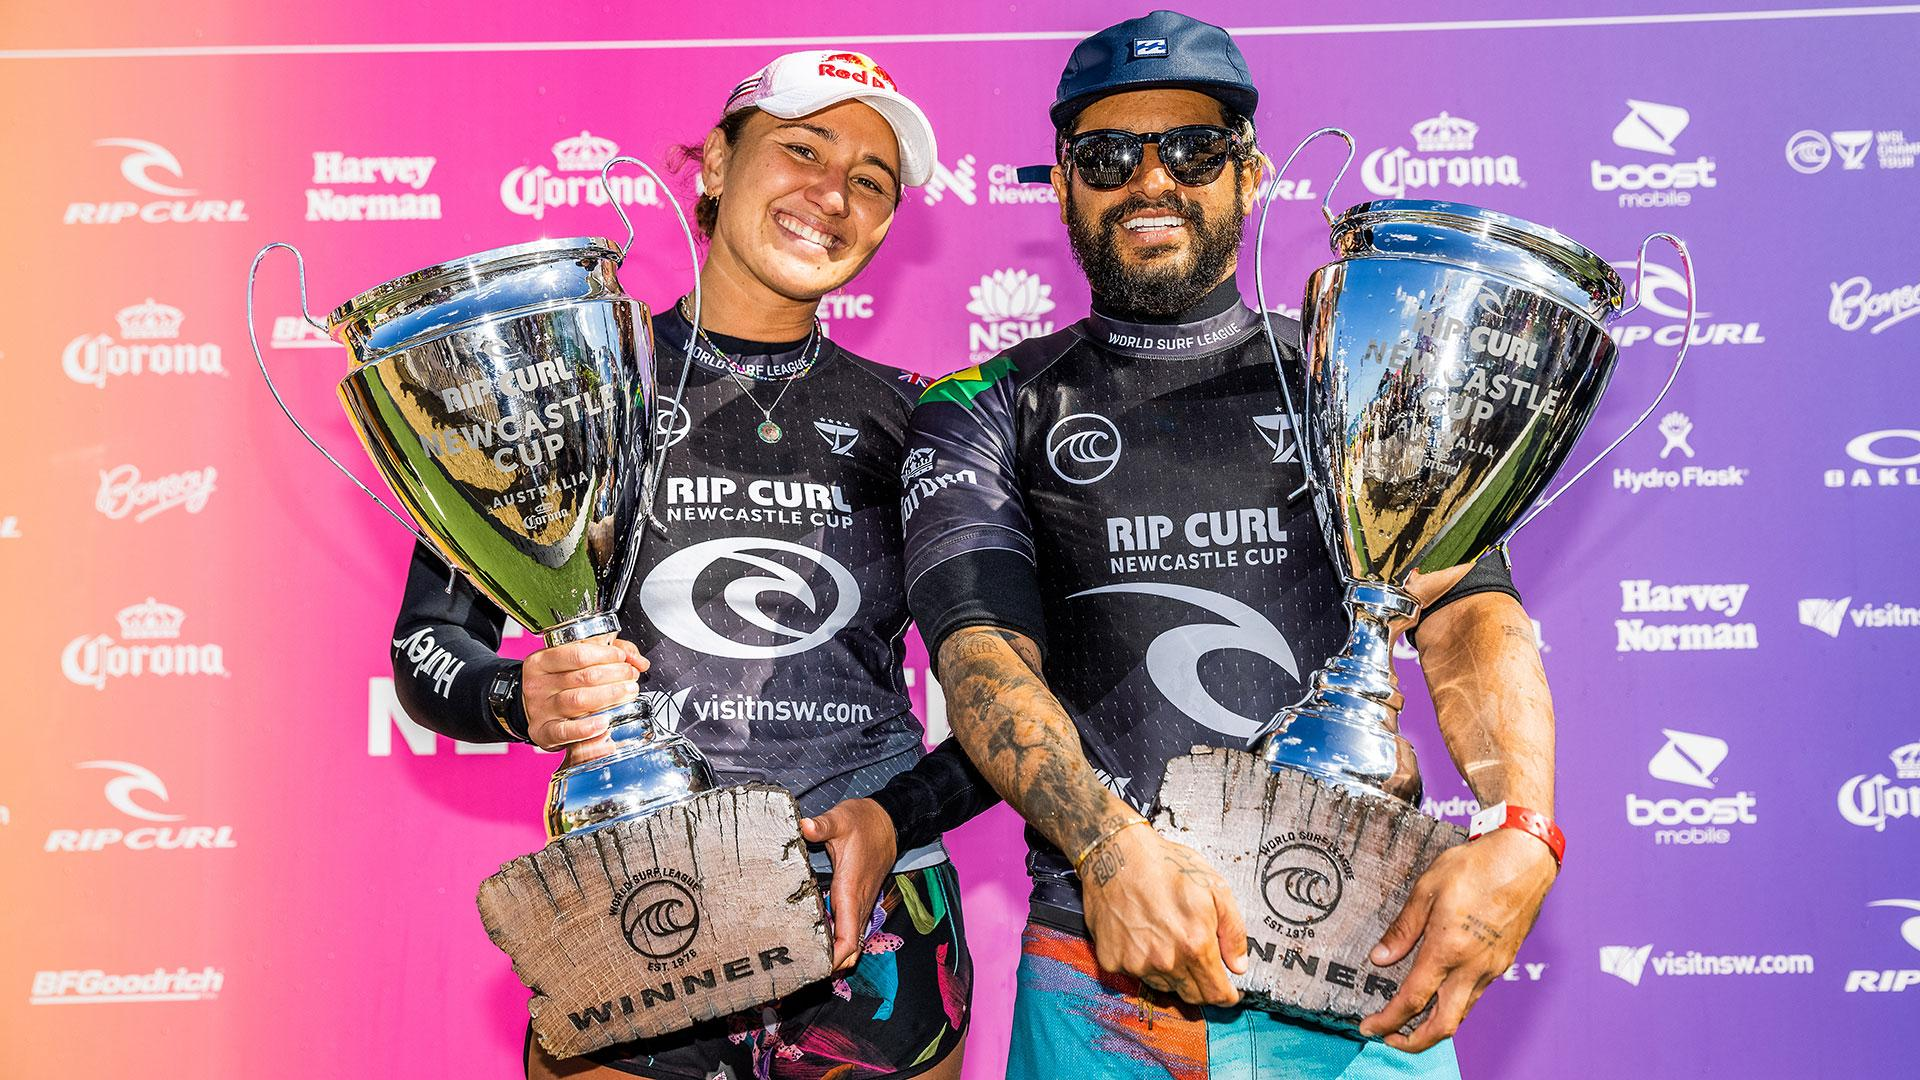 rip curl cup newcastle winners